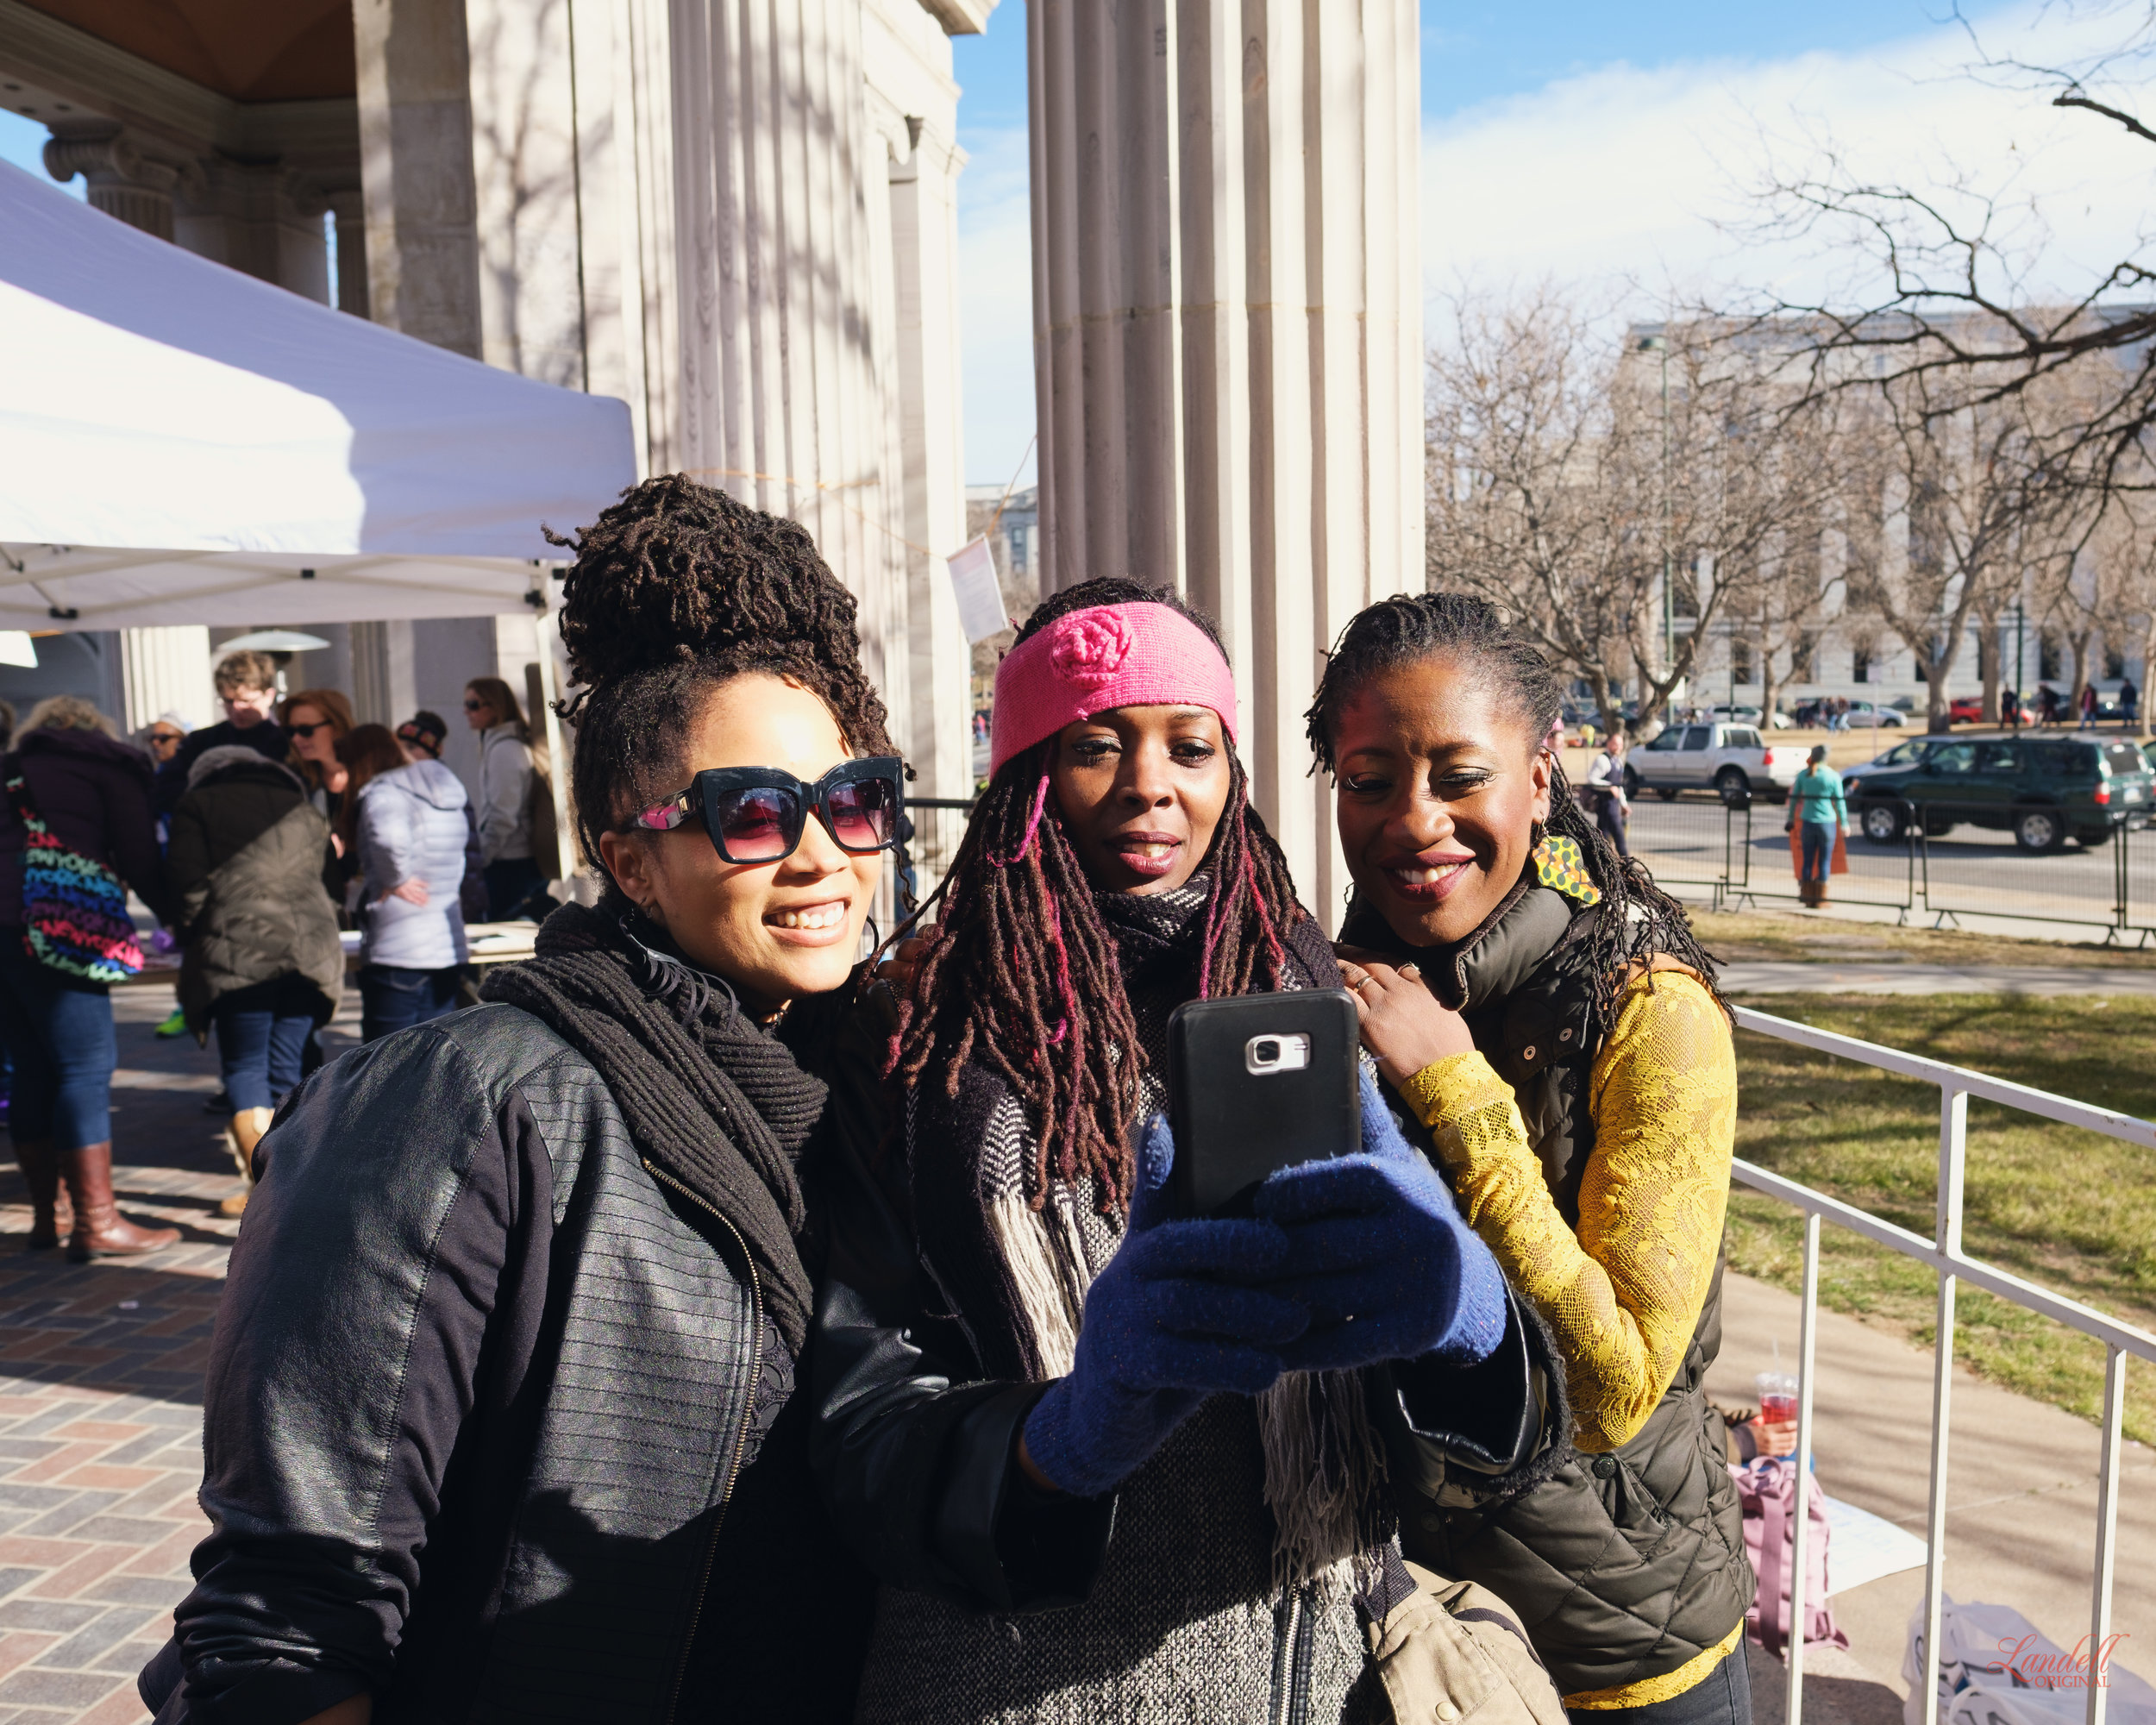 DENVER_WOMENS_MARCH-2018_01-20-2018_0124.jpg